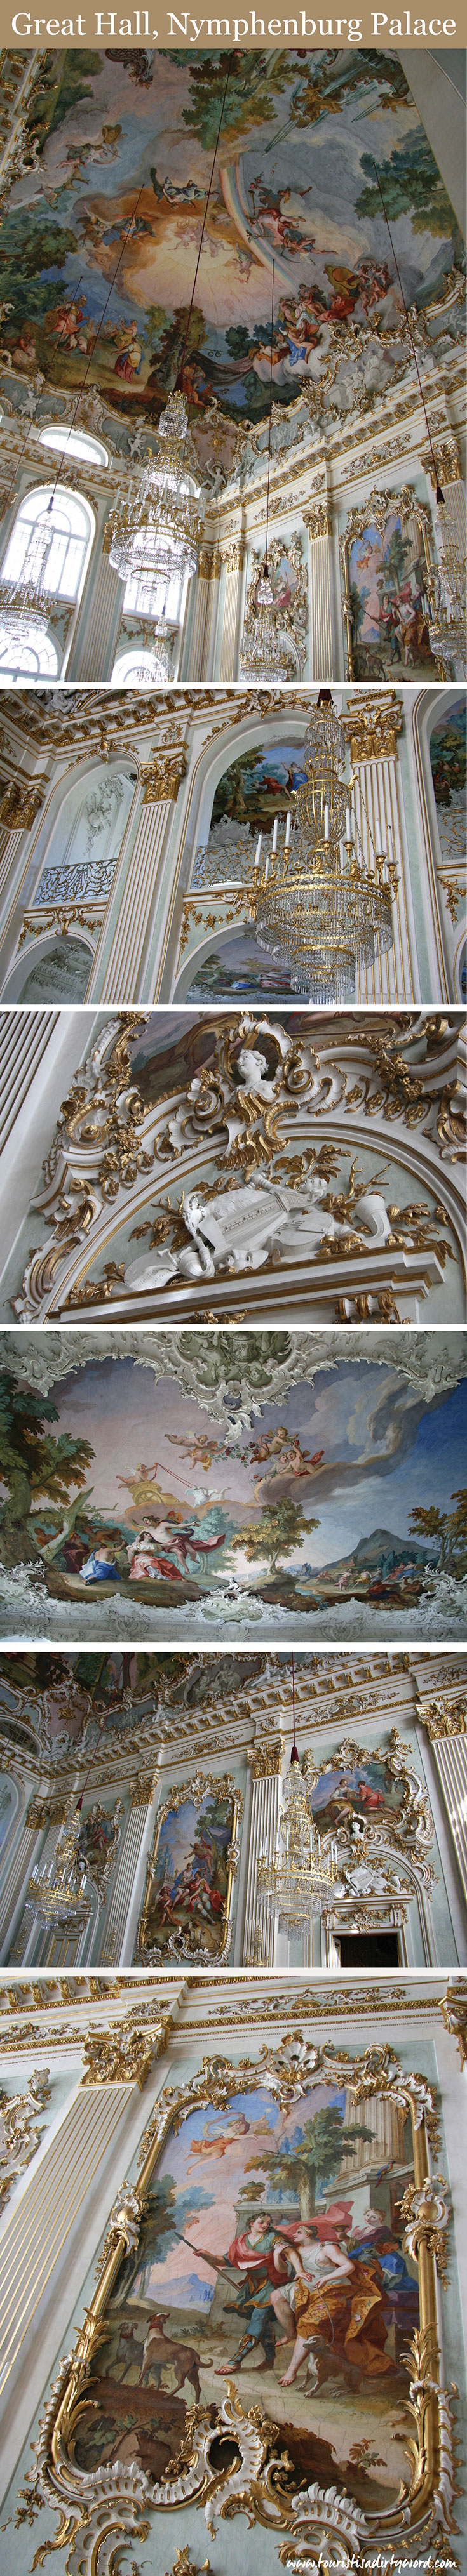 Great Hall, preserved rococo room, Nymphenburg Palace, Munich • Germany Travel Blog Tourist is a Dirty Word